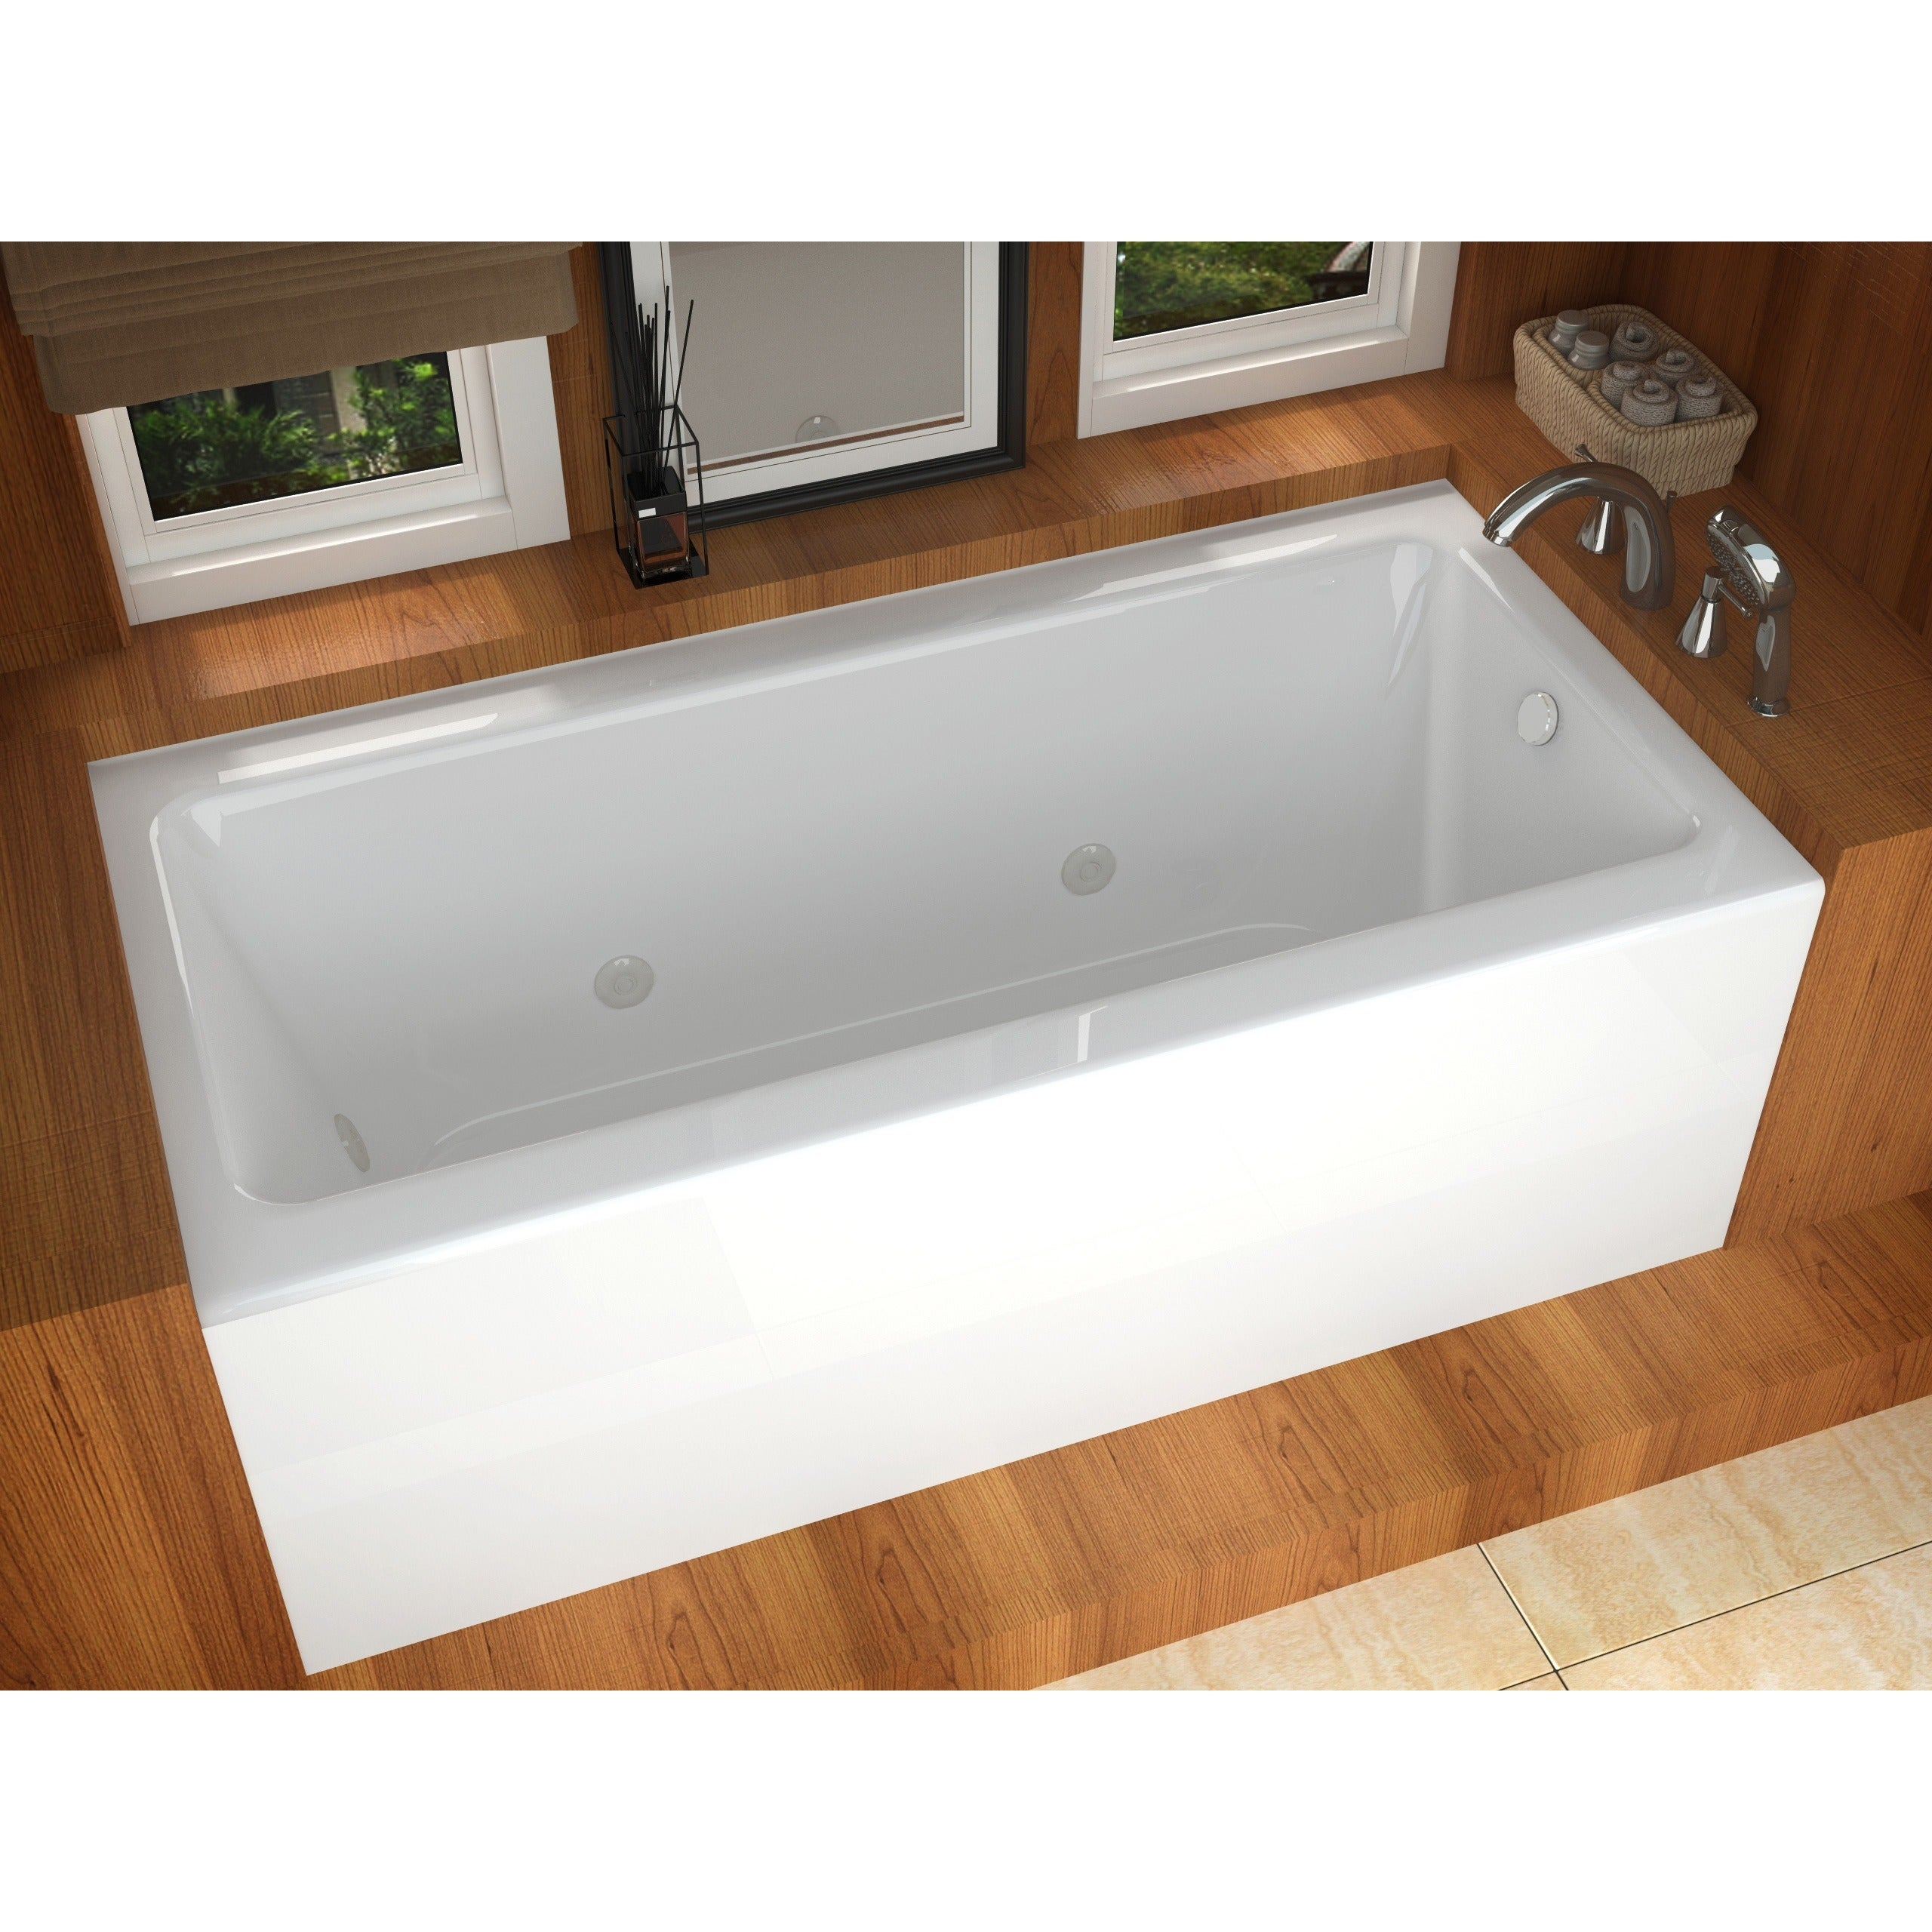 Atlantis Whirlpools Soho 30 x 60 Front Skirted Whirlpool ...